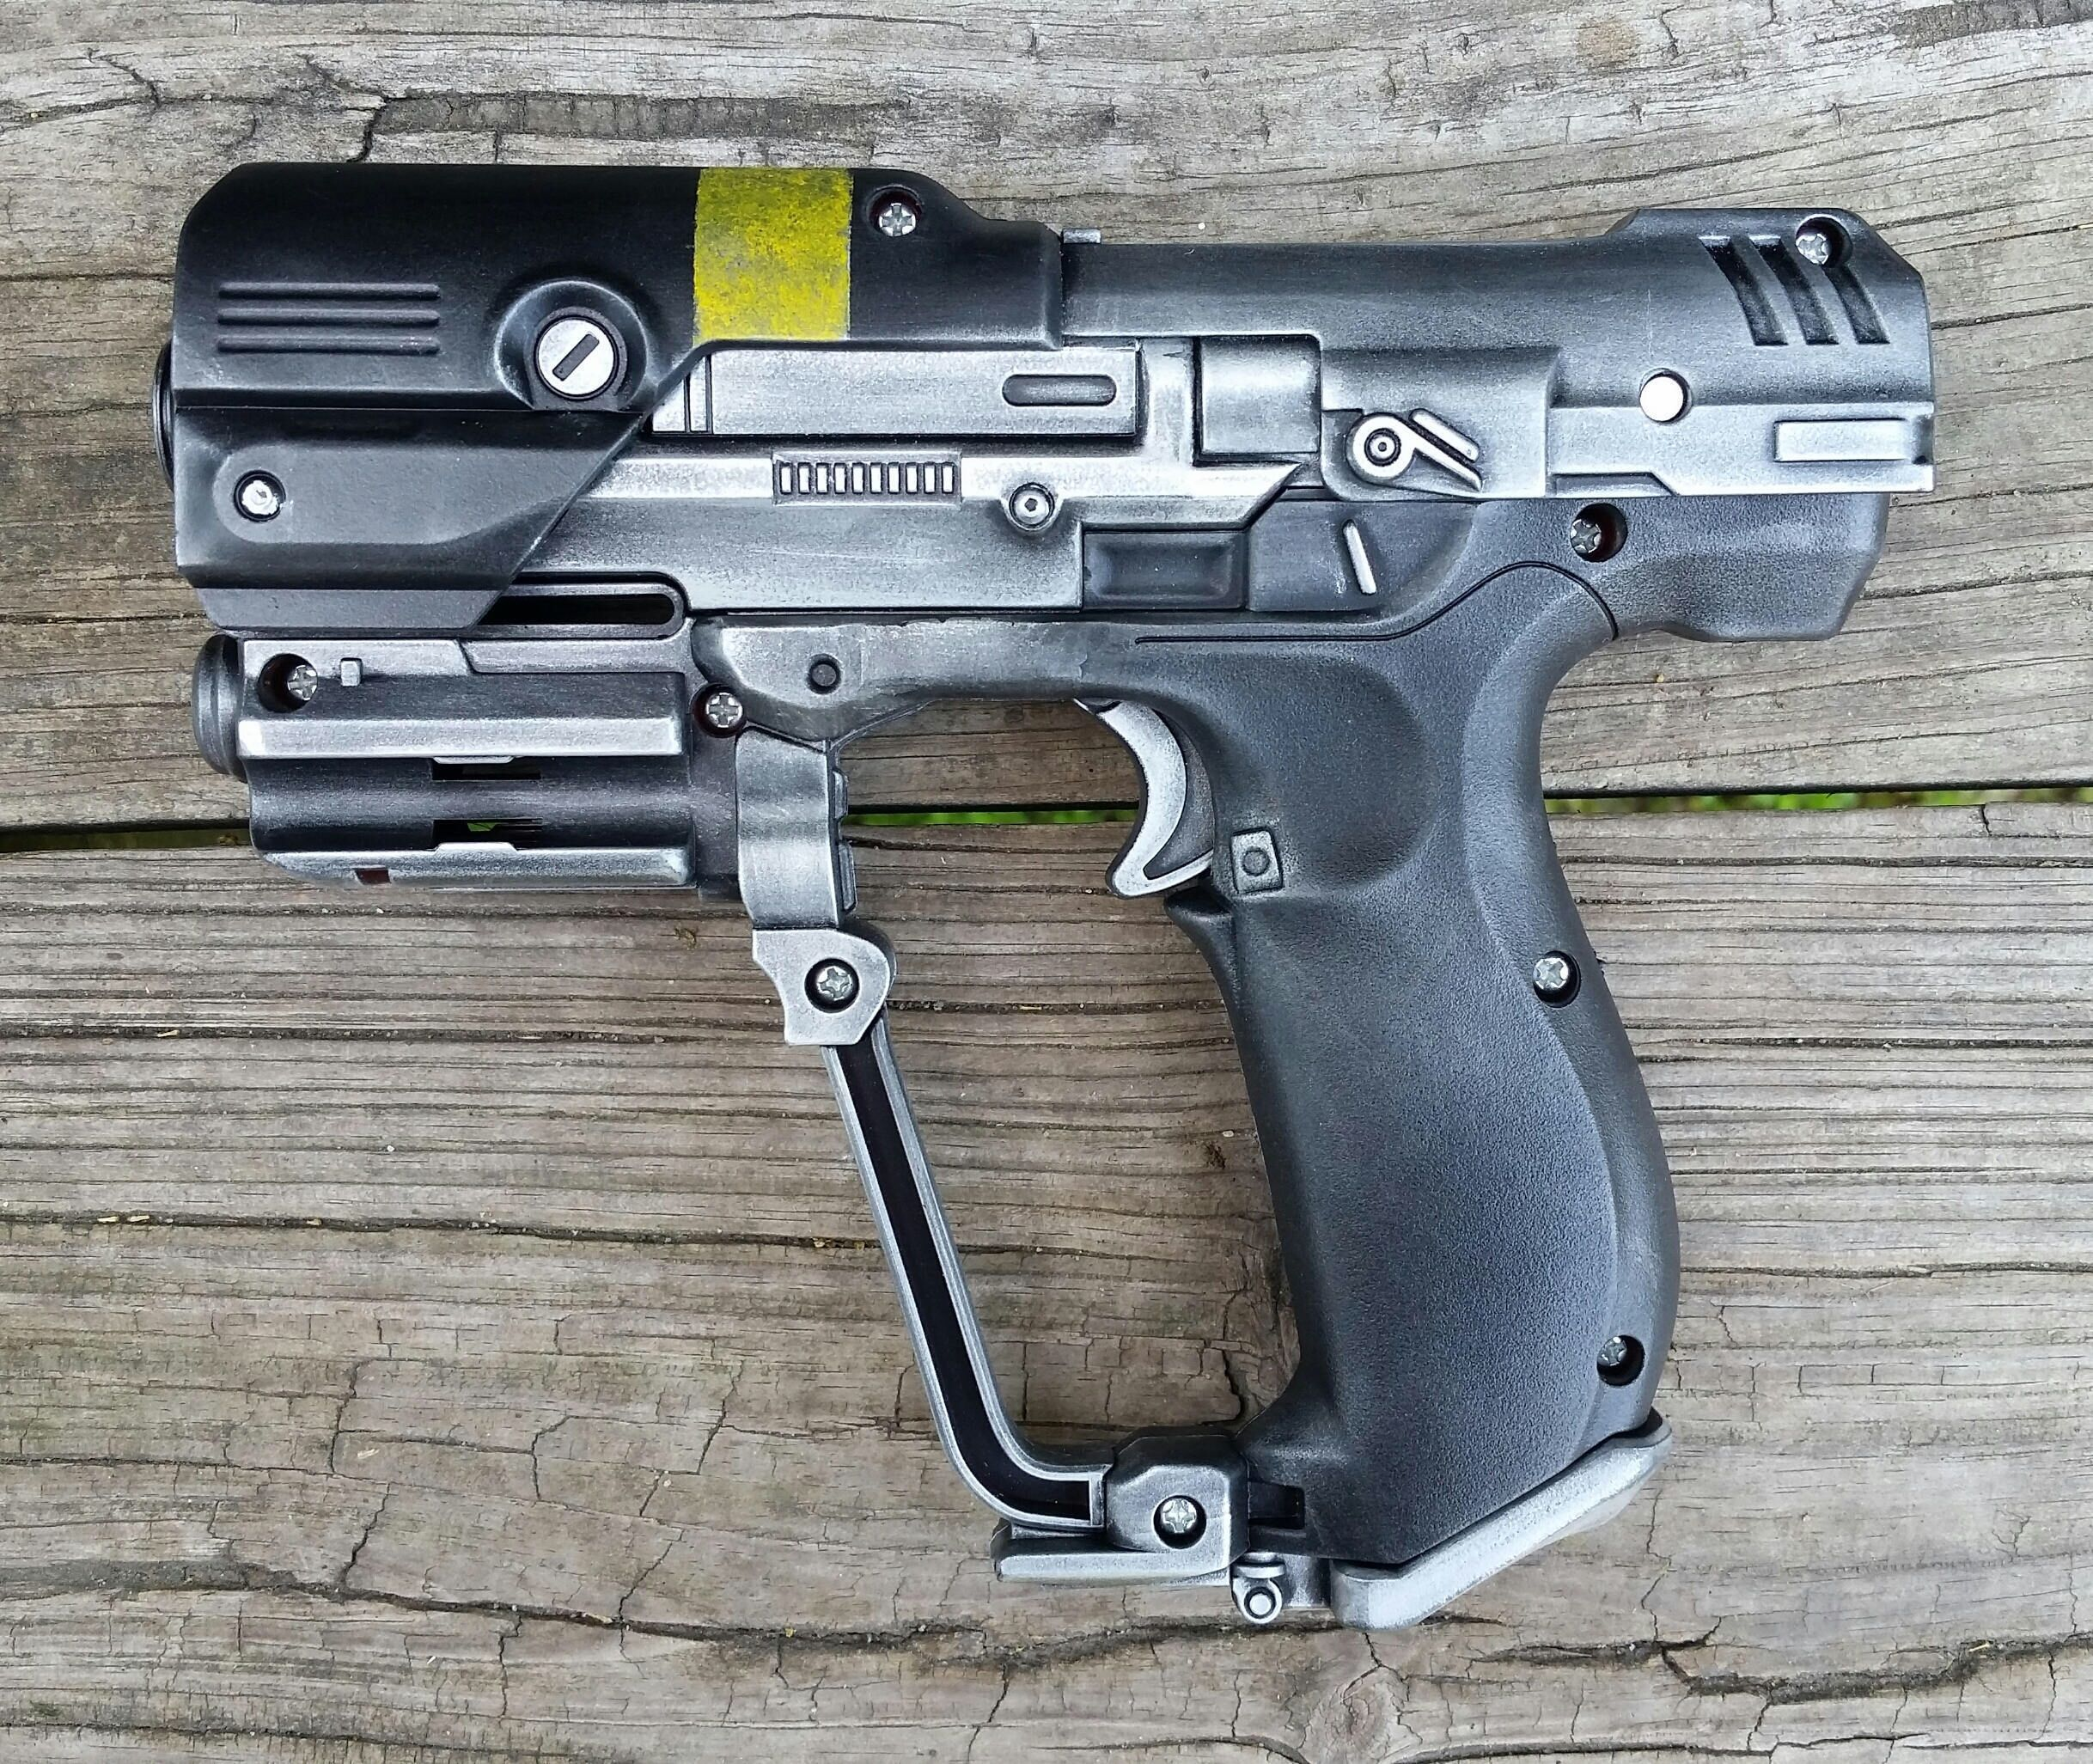 Pin by Christopher Hernandez-Tapia on Nerf Weapon Cosplay